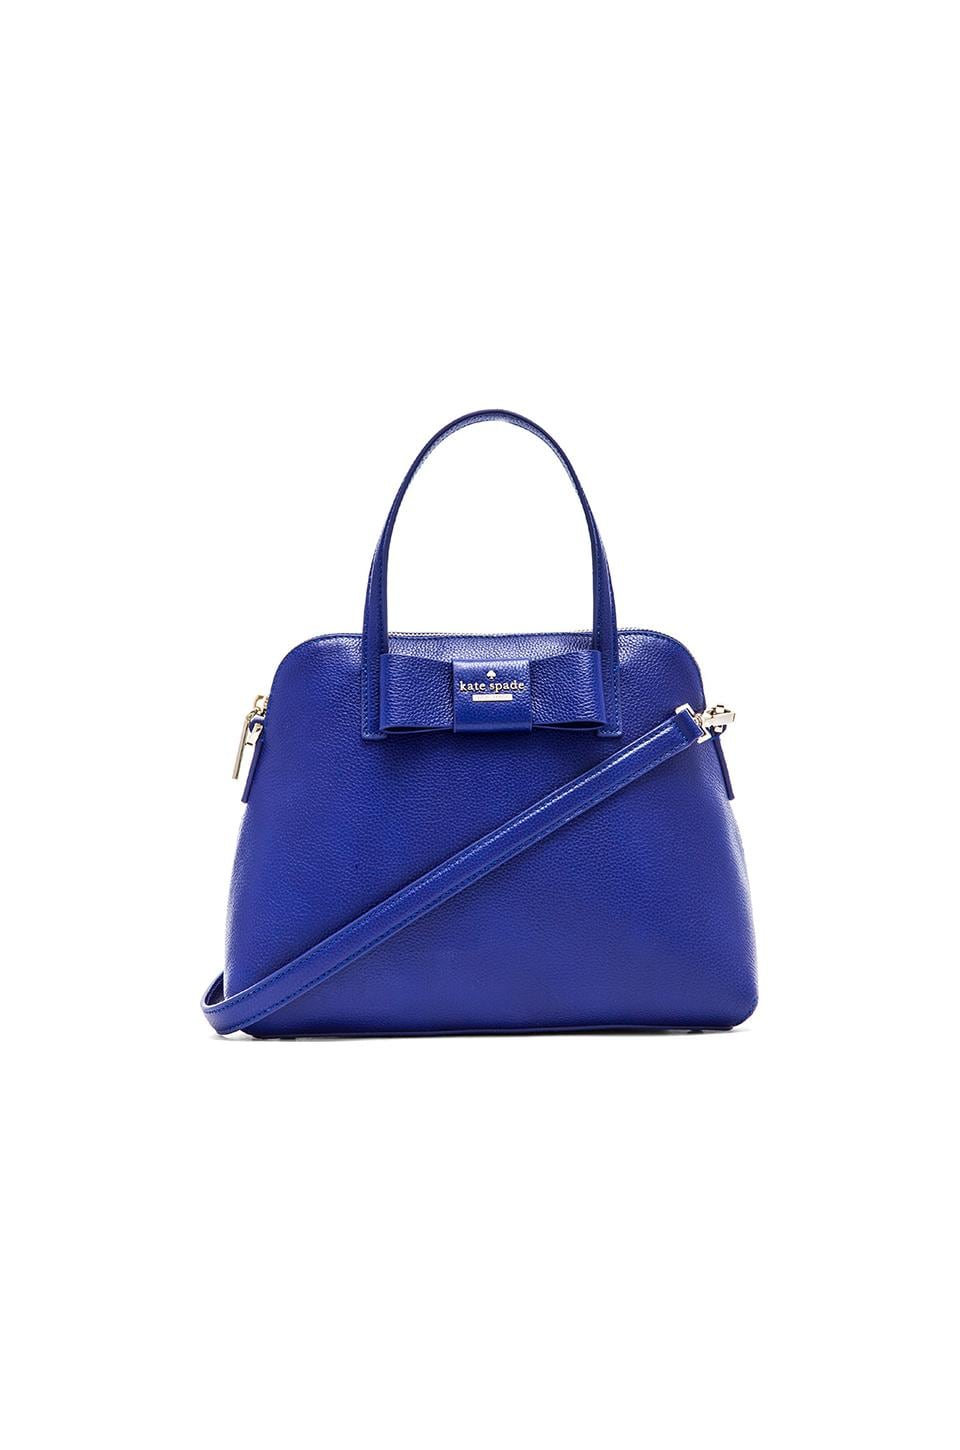 kate spade new york Maise Bag in Bright Lapis